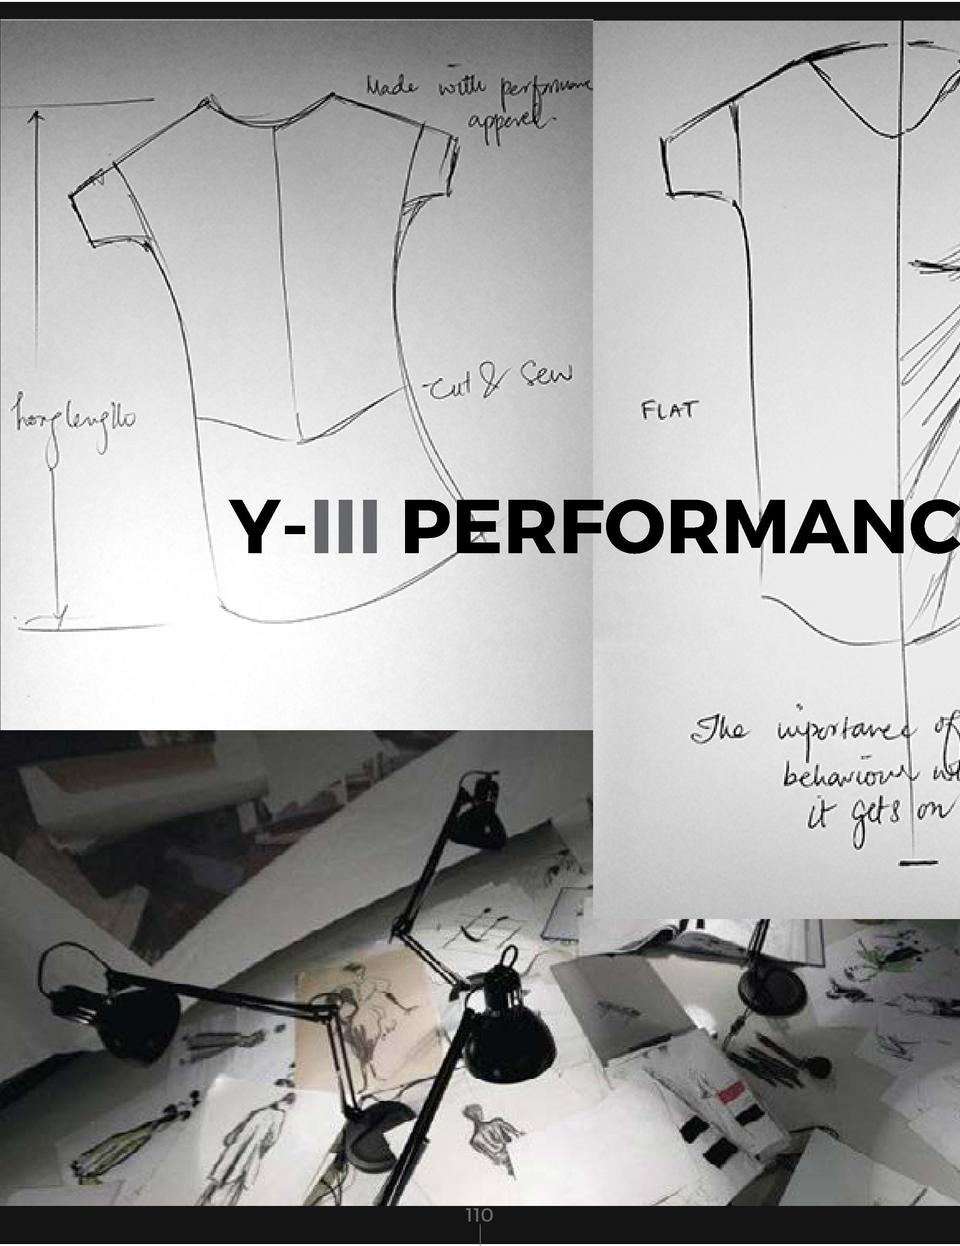 Y-III PERFORMANCE  BLACK POLYESTER SPANDEX PERFORMANCE FABRIC  111            110